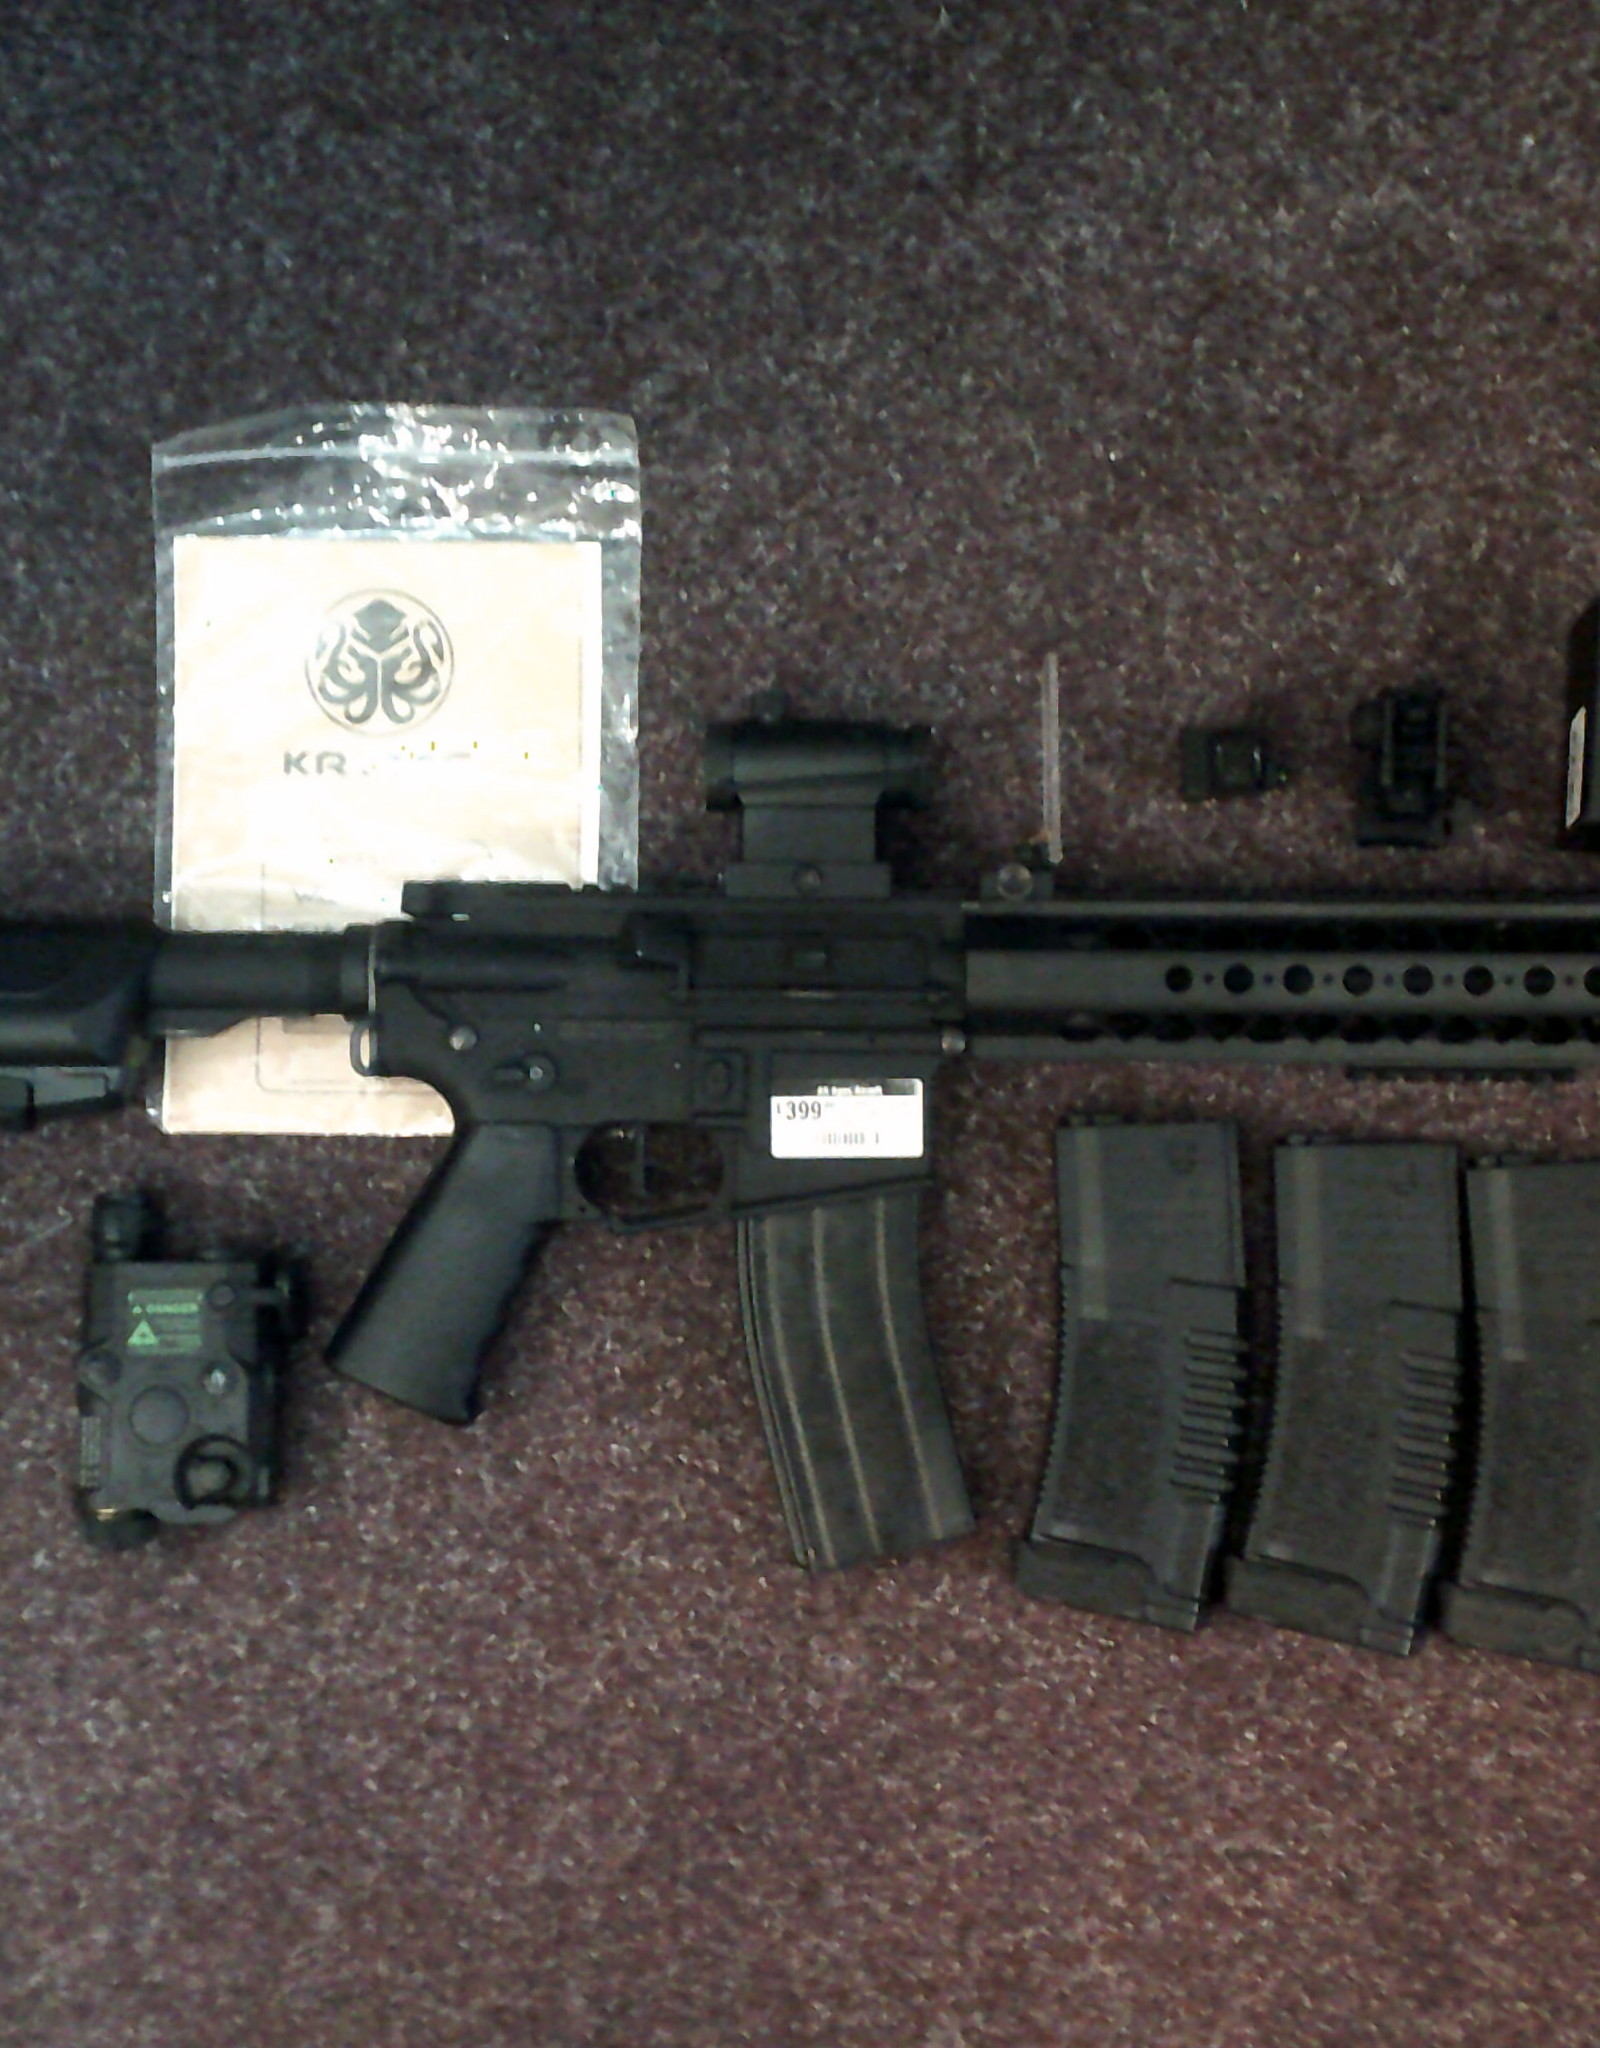 KRYTAC S/H KRYTAC LVOA WITH 7 MAGS SIGHT AND PEQ